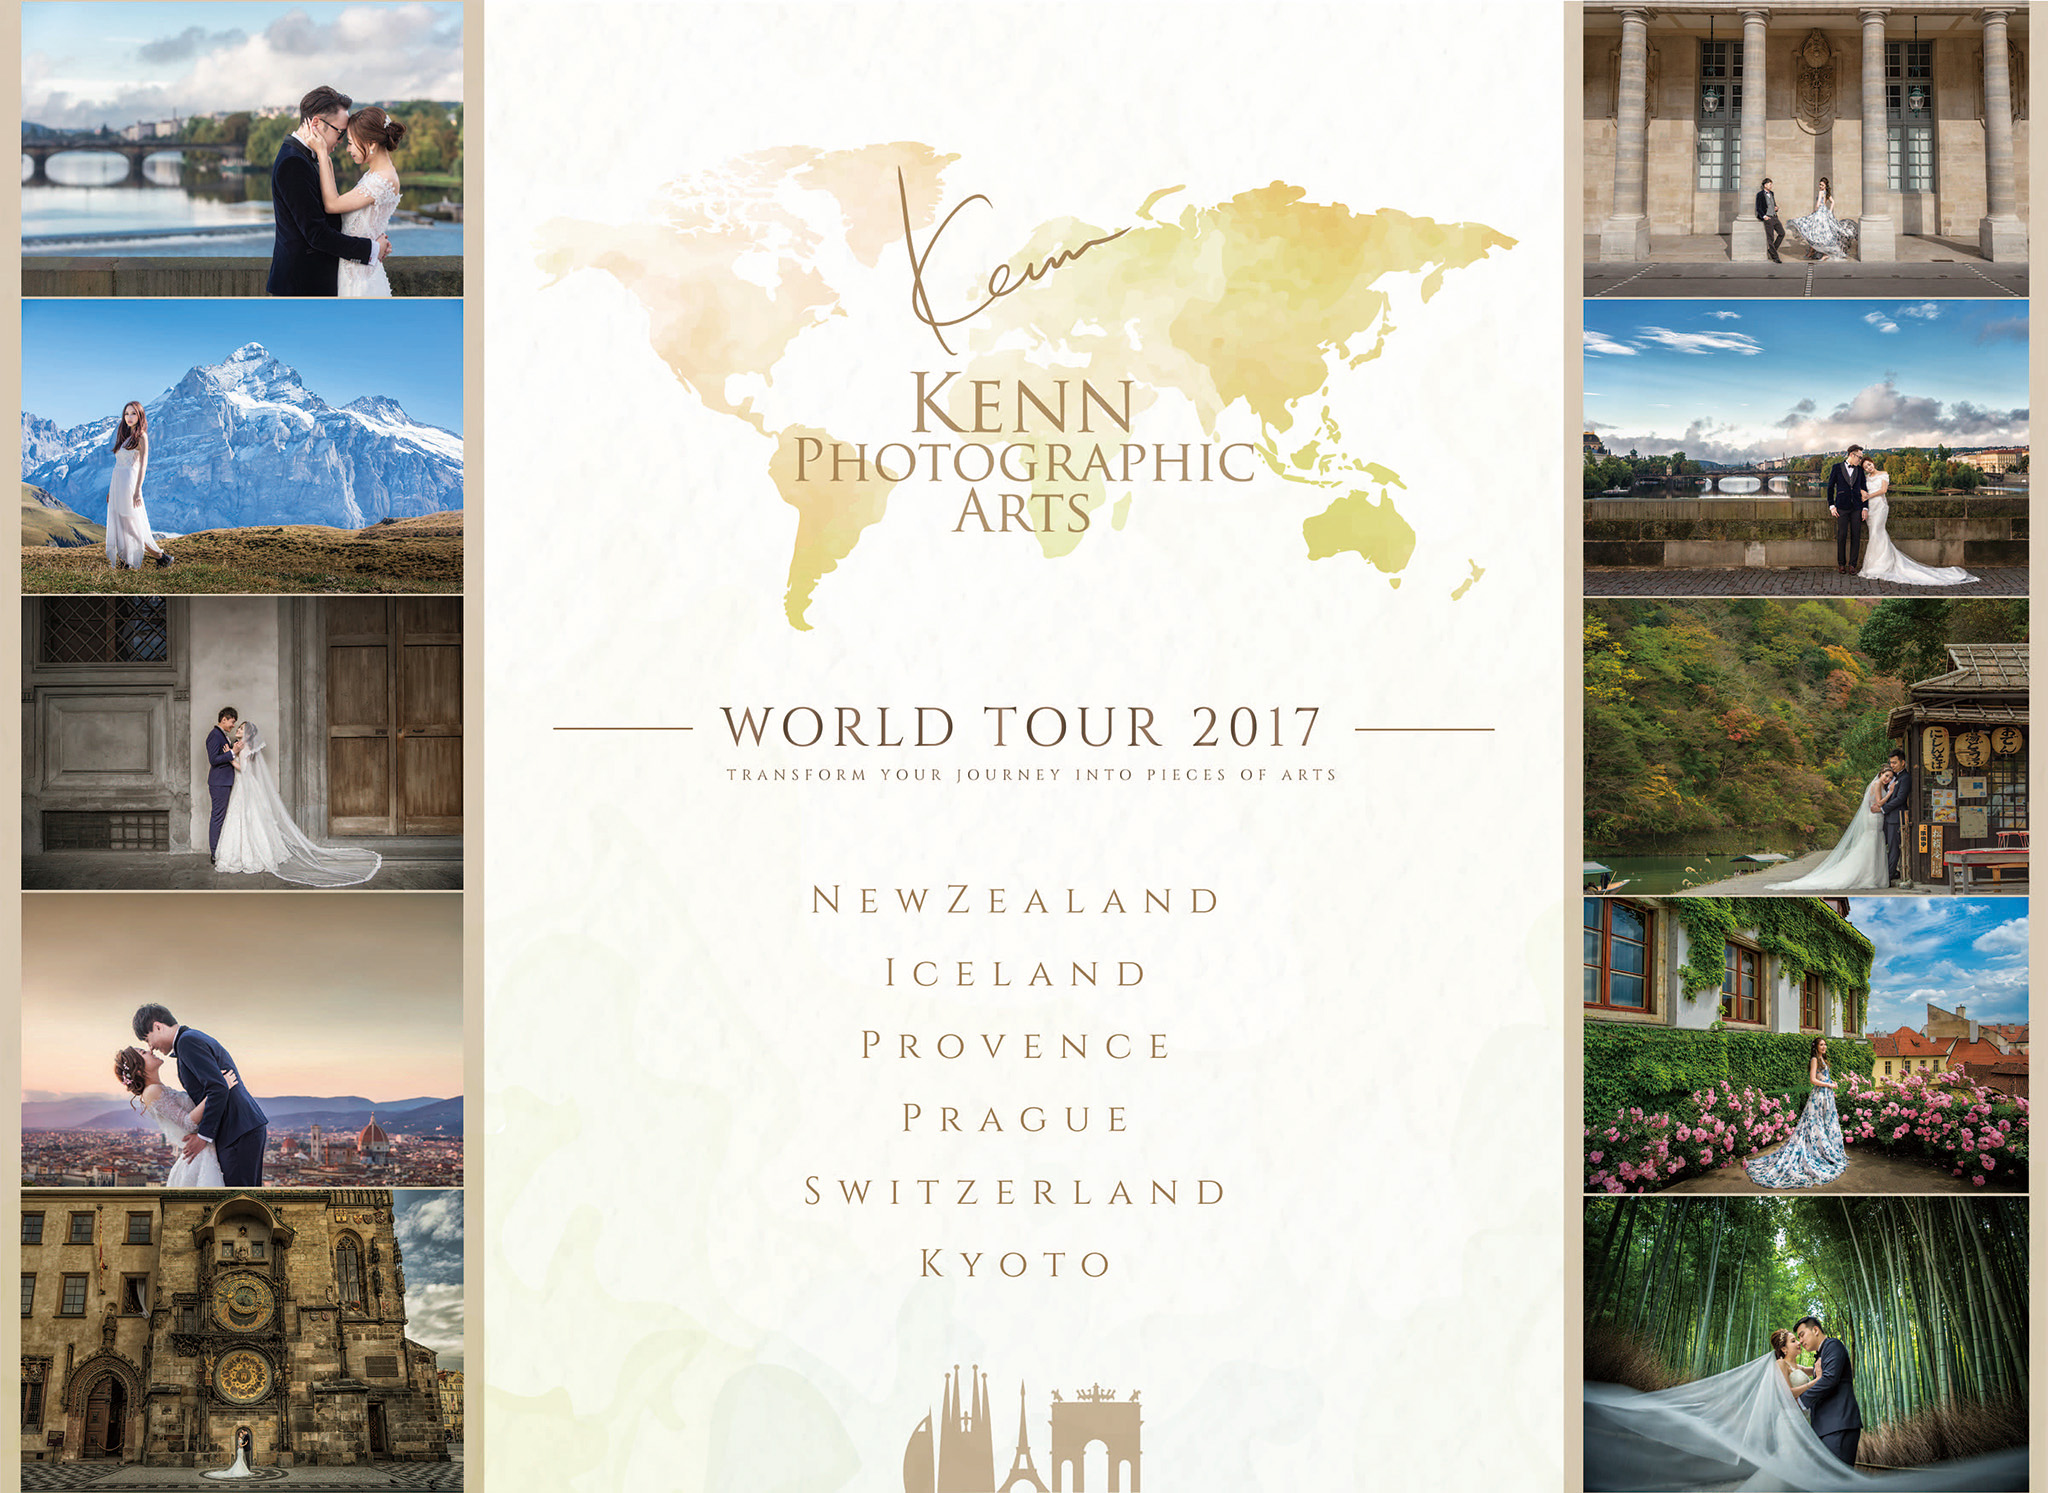 World Tour 2017